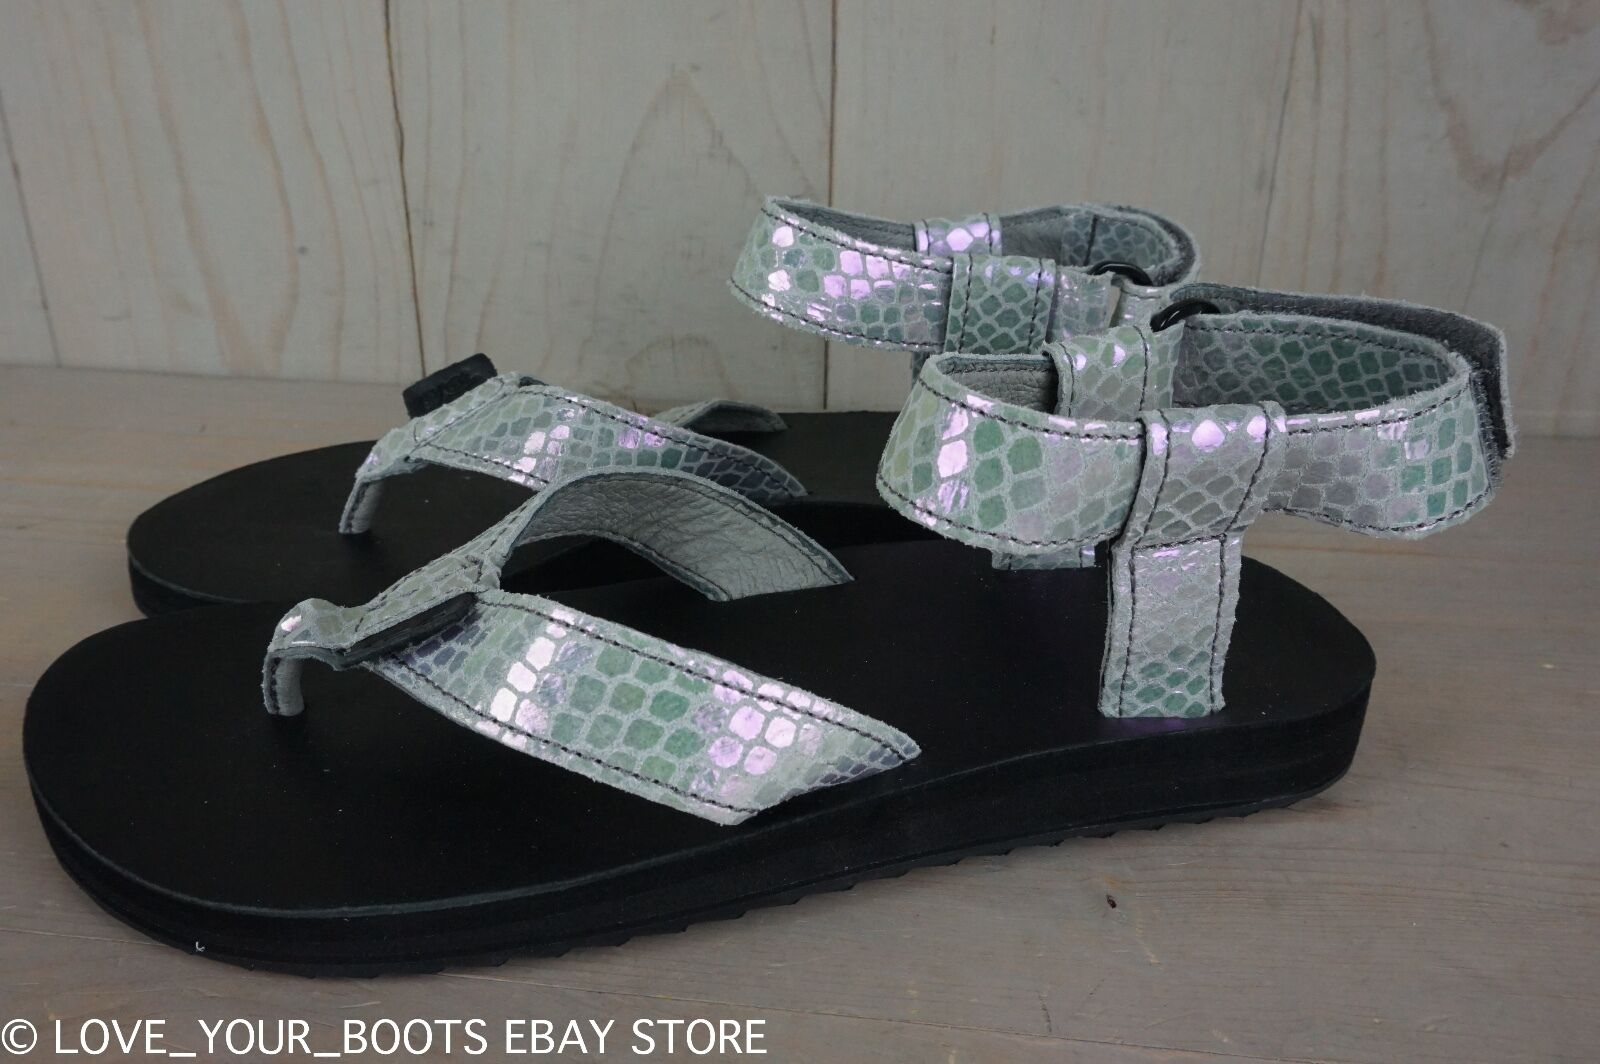 TEVA  ORIGINAL IRIDESCENT GREY REPTILE EMBOSSED WOMENS SANDALS US 7 NIB